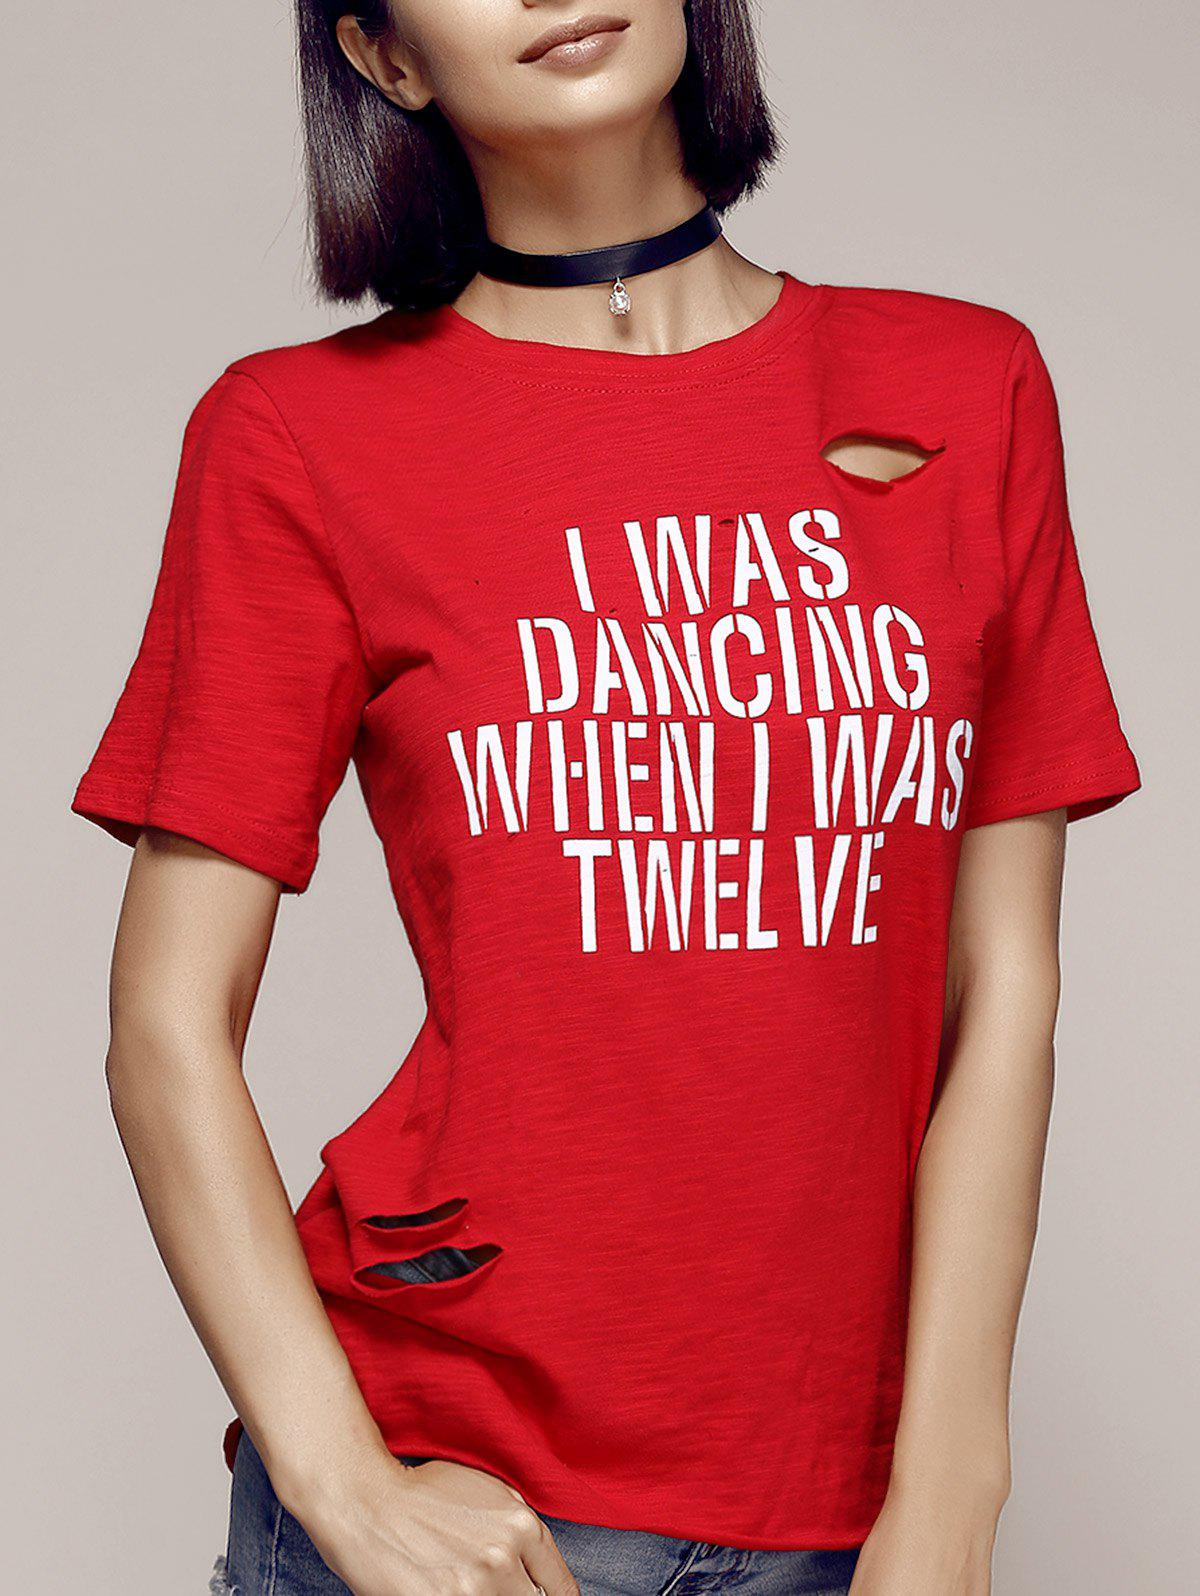 Stylish Women's Round Neck Cut Out Letter Pattern Short Sleeve T-Shirt - RED ONE SIZE(FIT SIZE XS TO M)